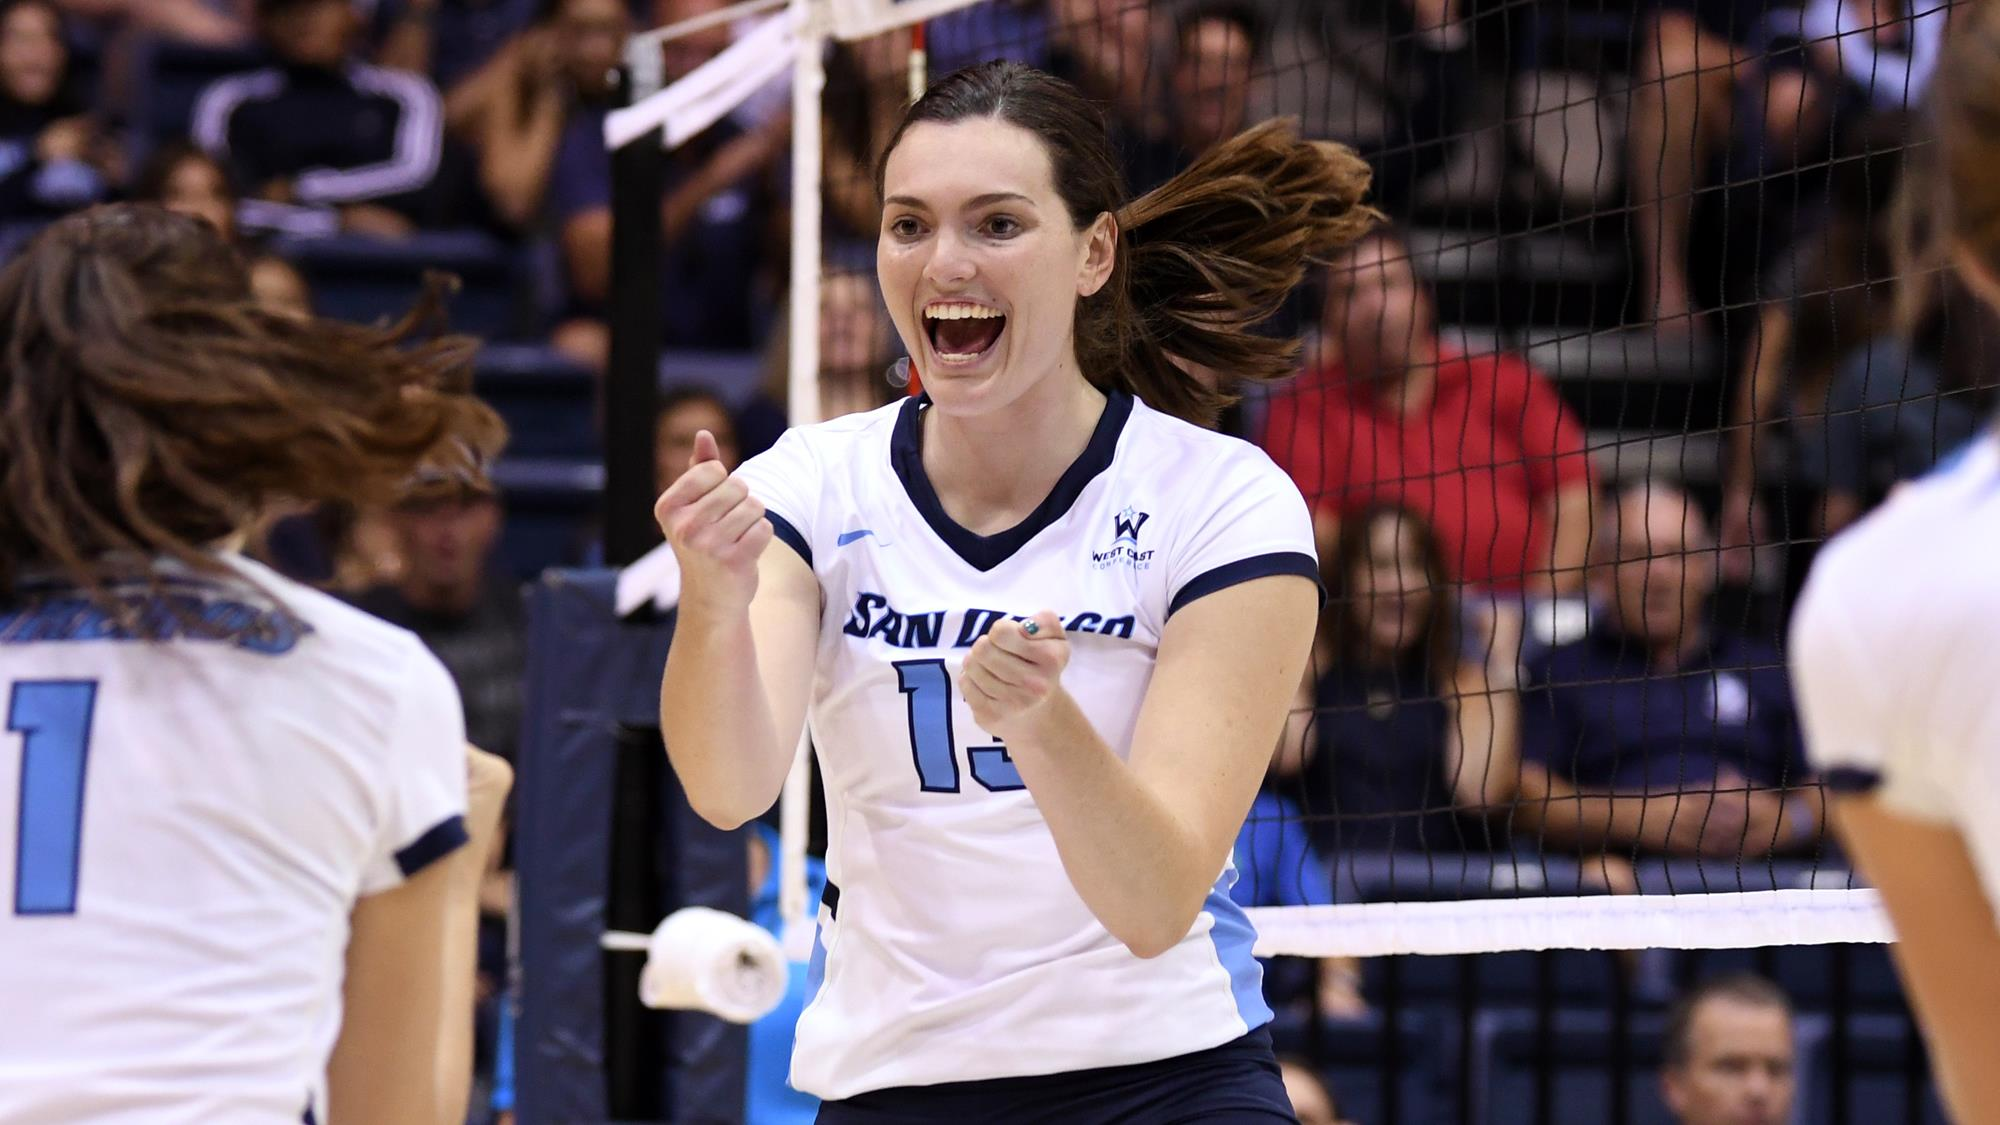 Kaity Edwards Women S Volleyball University Of San Diego Athletics